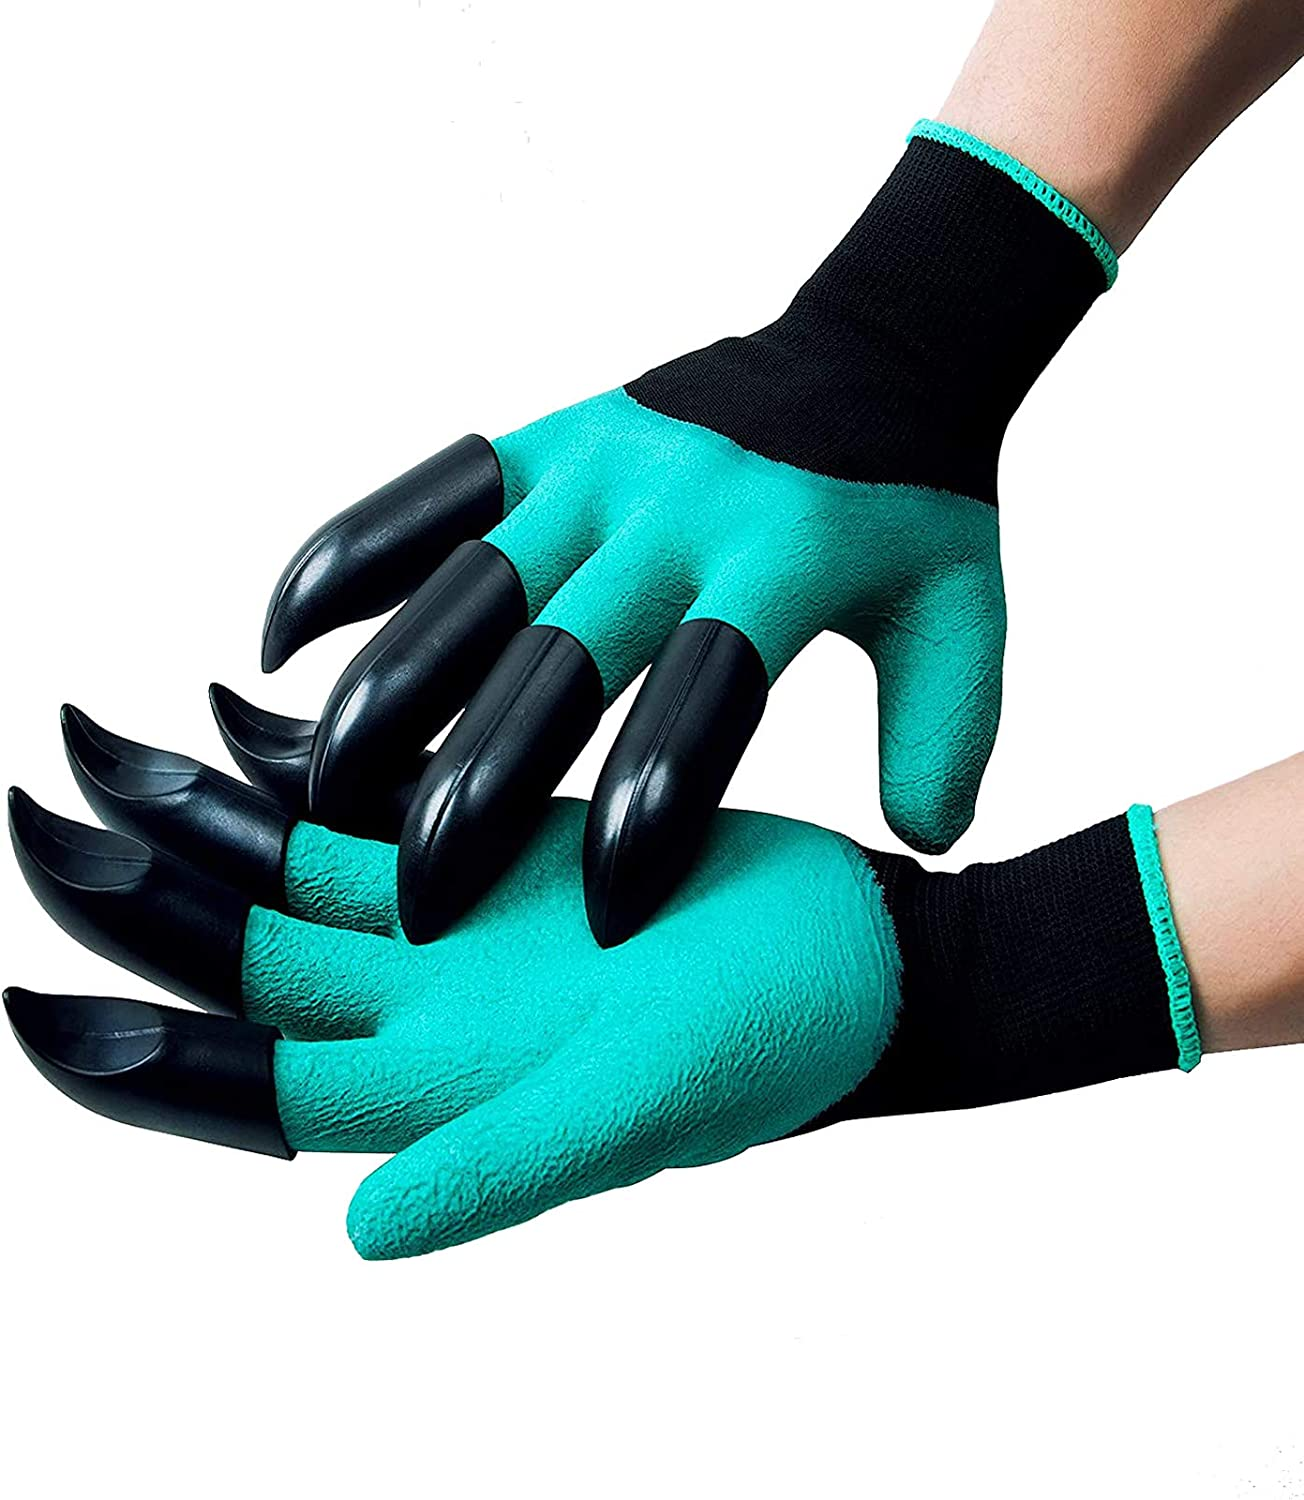 Garden Genie Gloves with Claws - Waterproof Garden Gloves for Digging, Planting, Weeding, Protect Fingers, Gardening Gifts for Women and Men (Green)